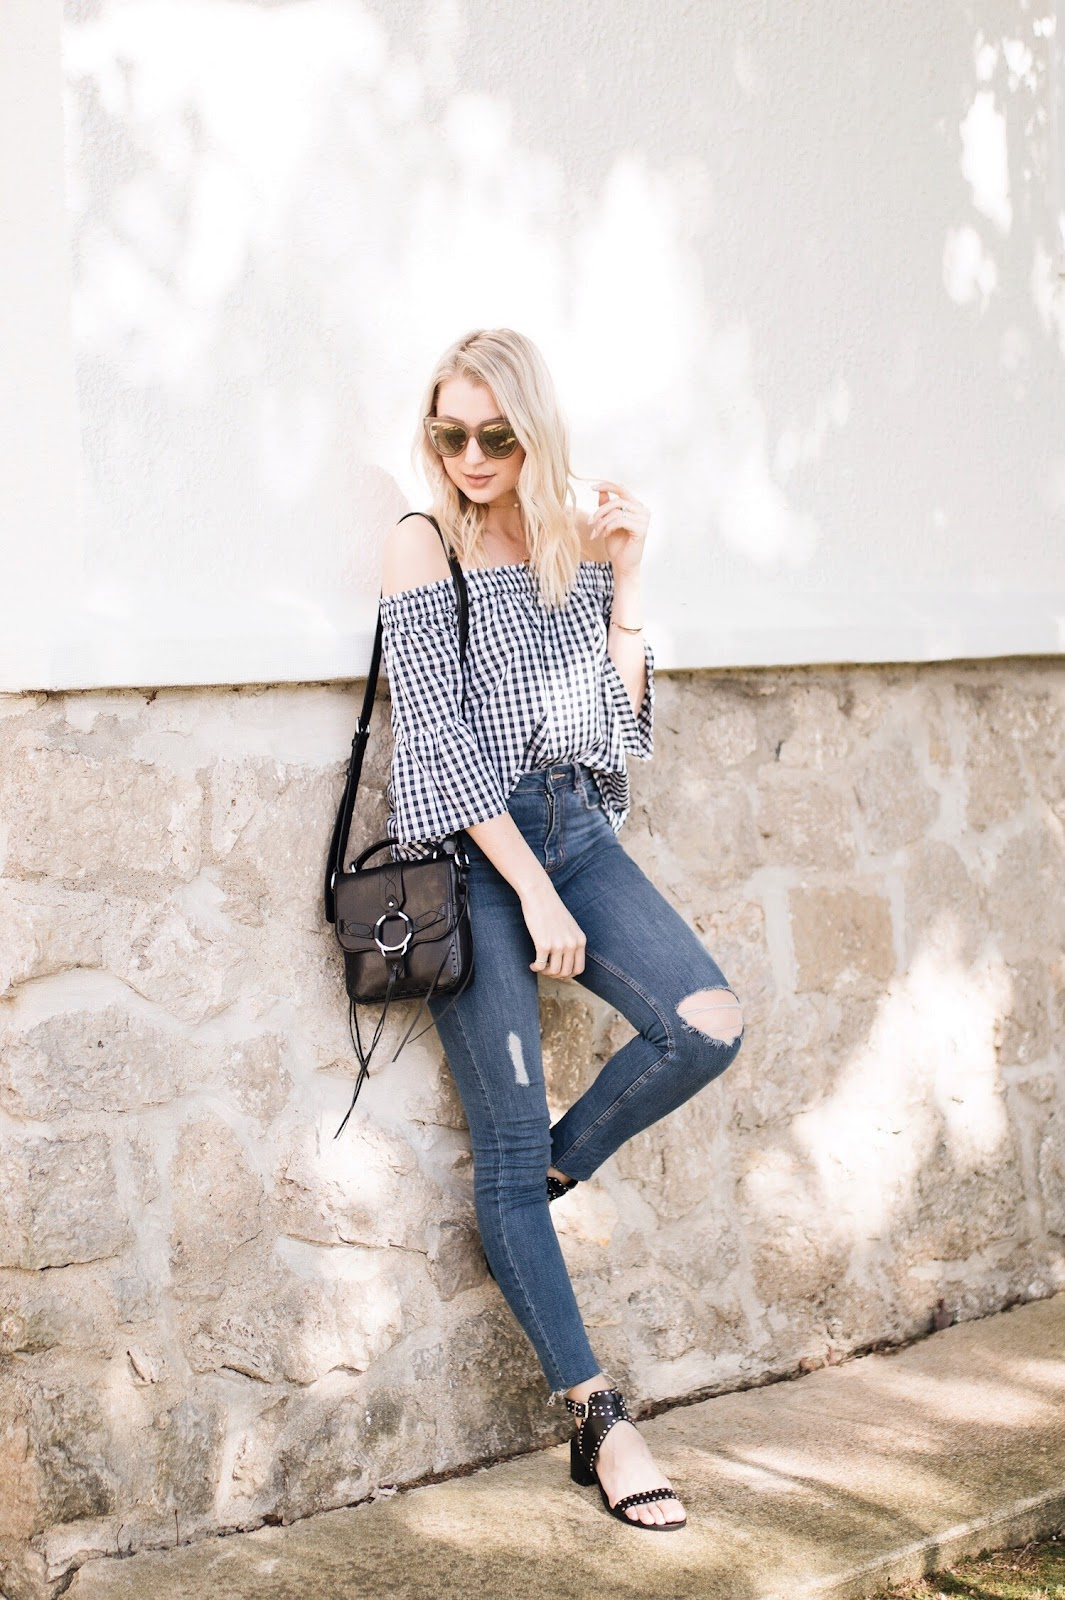 gingham top with distressed skinny jeans